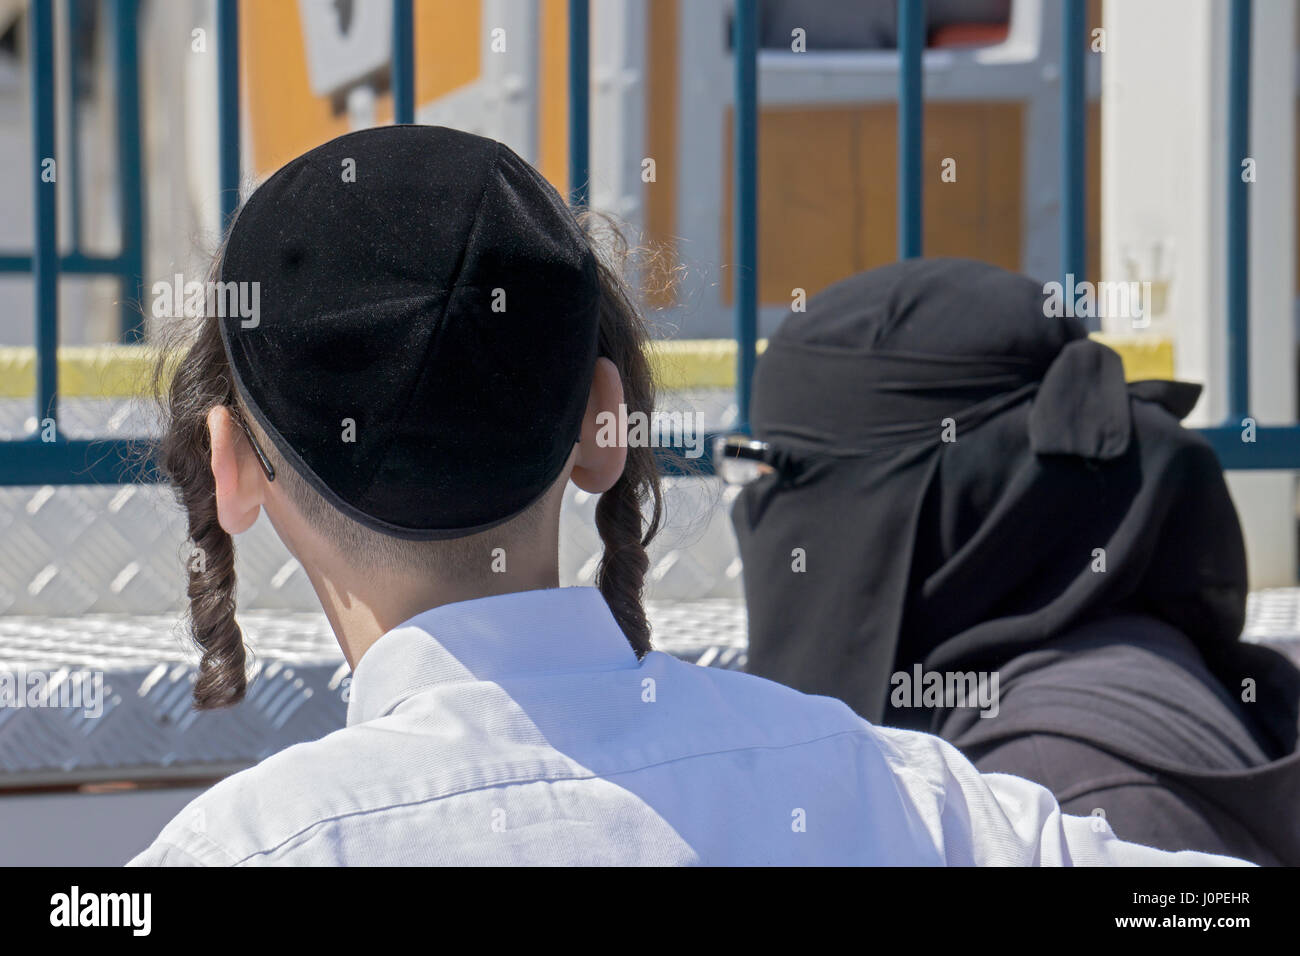 An orthodox religious Jewish boy standing next to a Muslim woman in a hijab at Luna Park in Coney Island, Brooklyn, - Stock Image